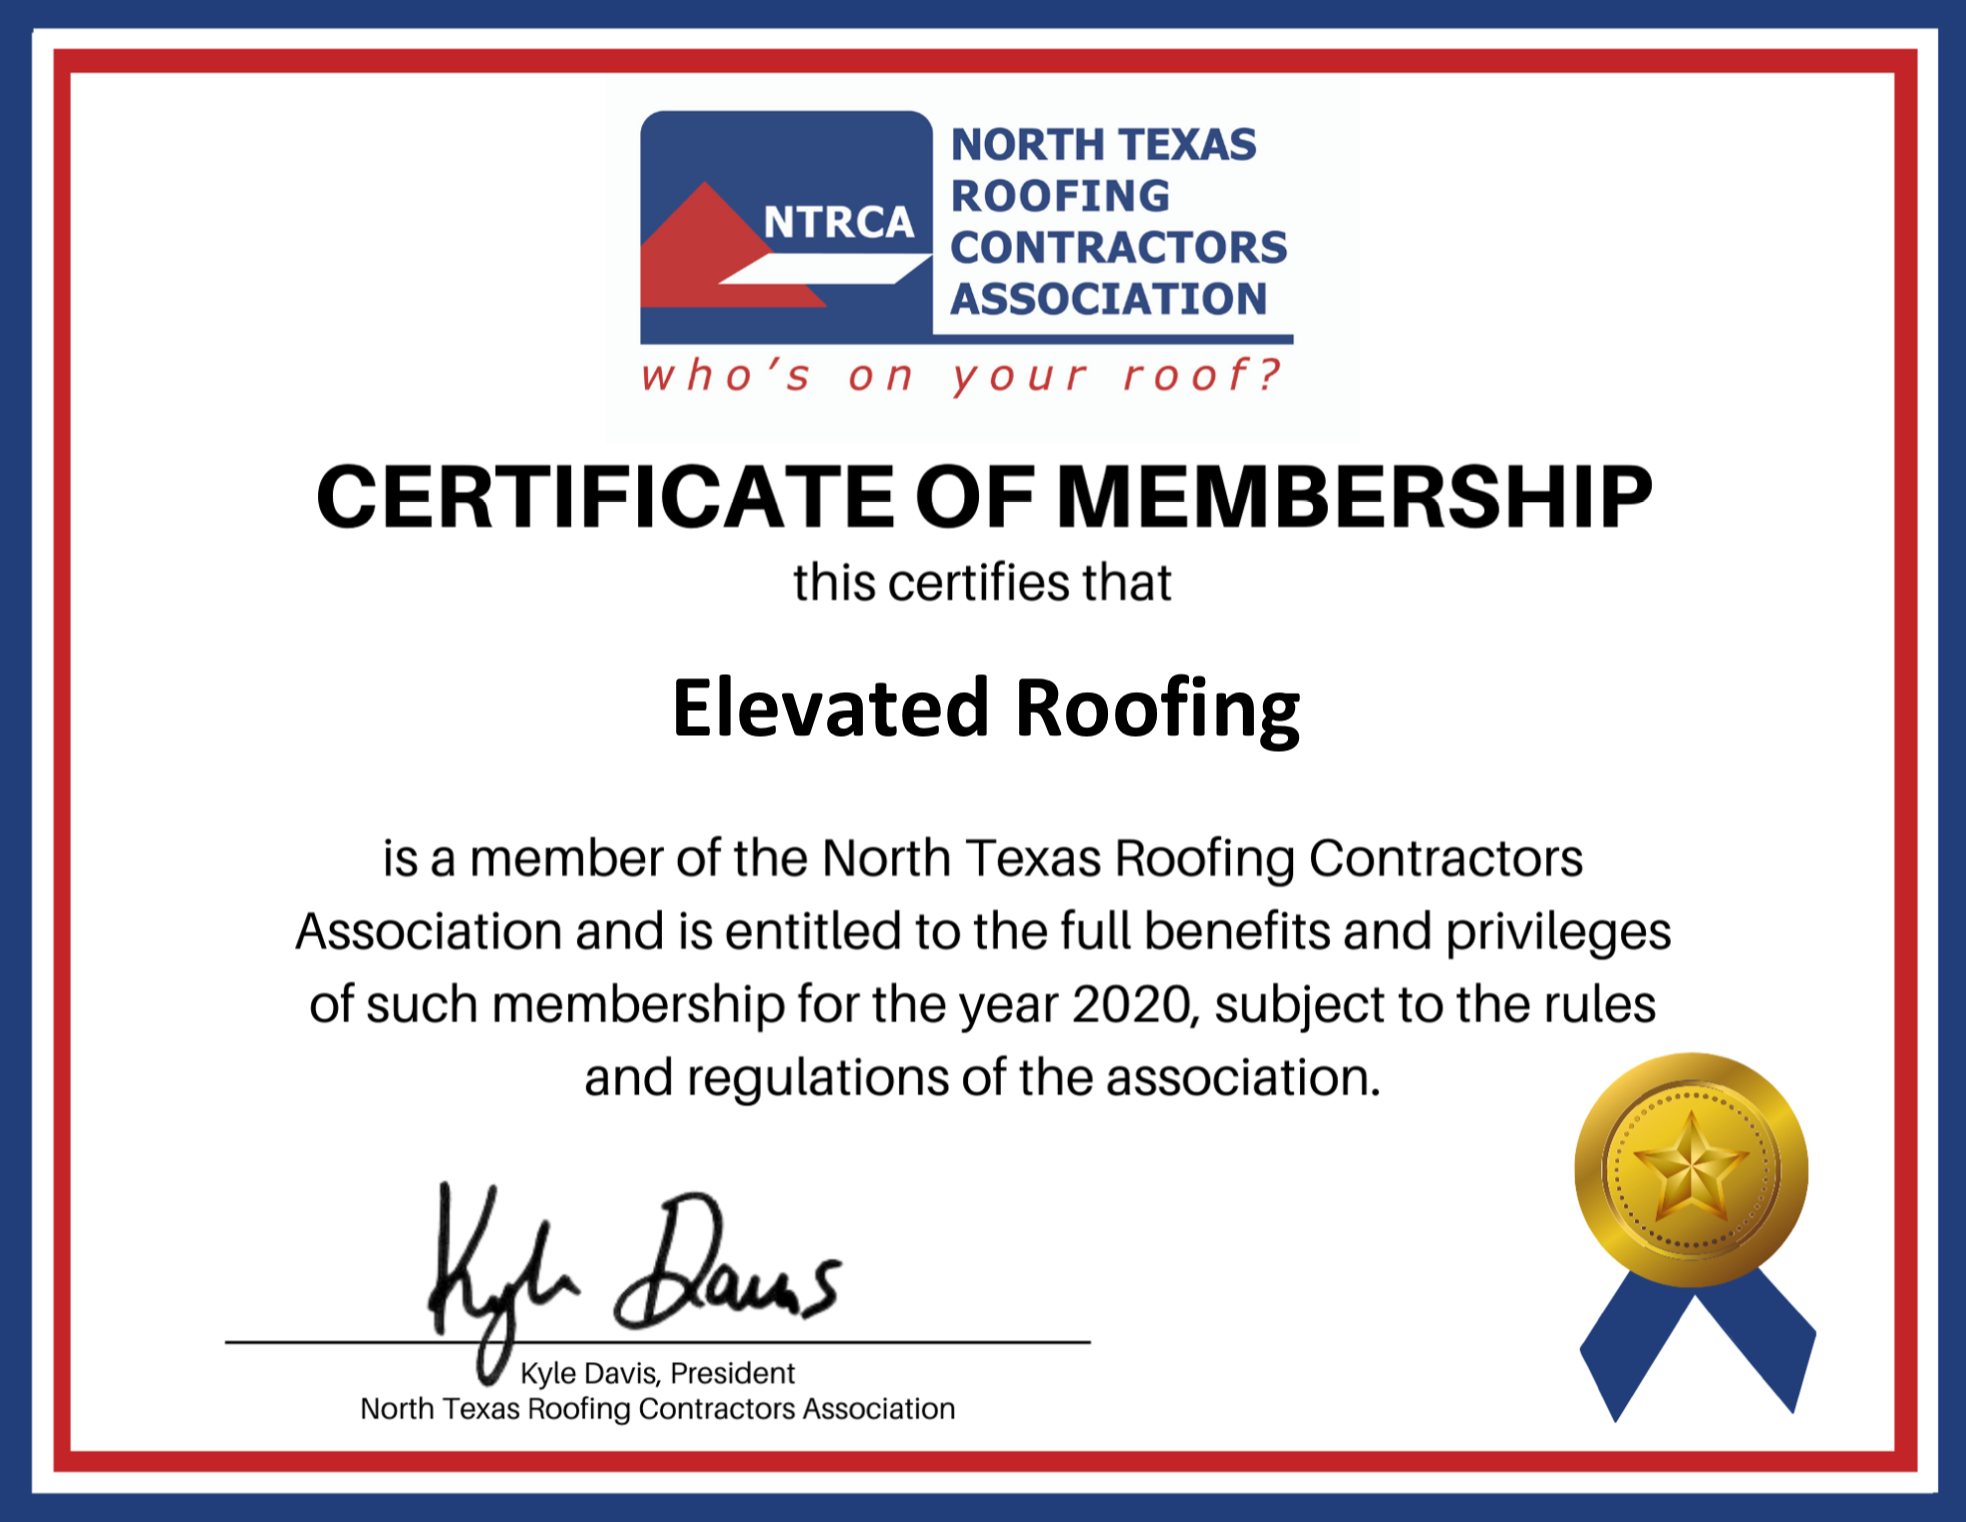 Elevated Roofing - NTRCA - North Texas Roofing Contractors Association